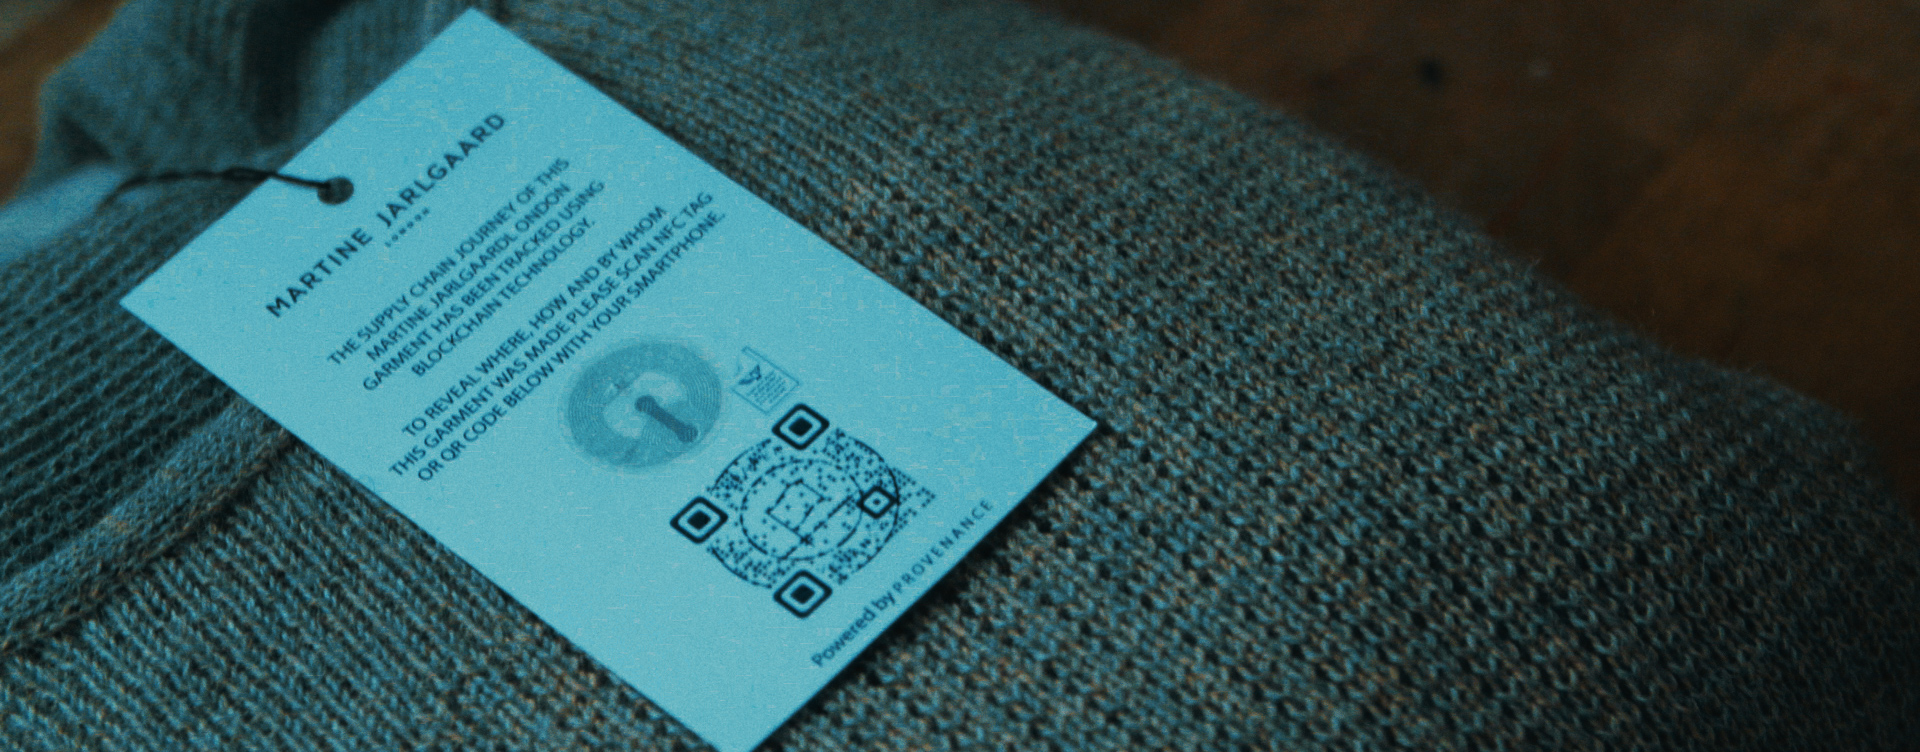 Clothing tag with QR code on Martine Jarlgaard London brand.